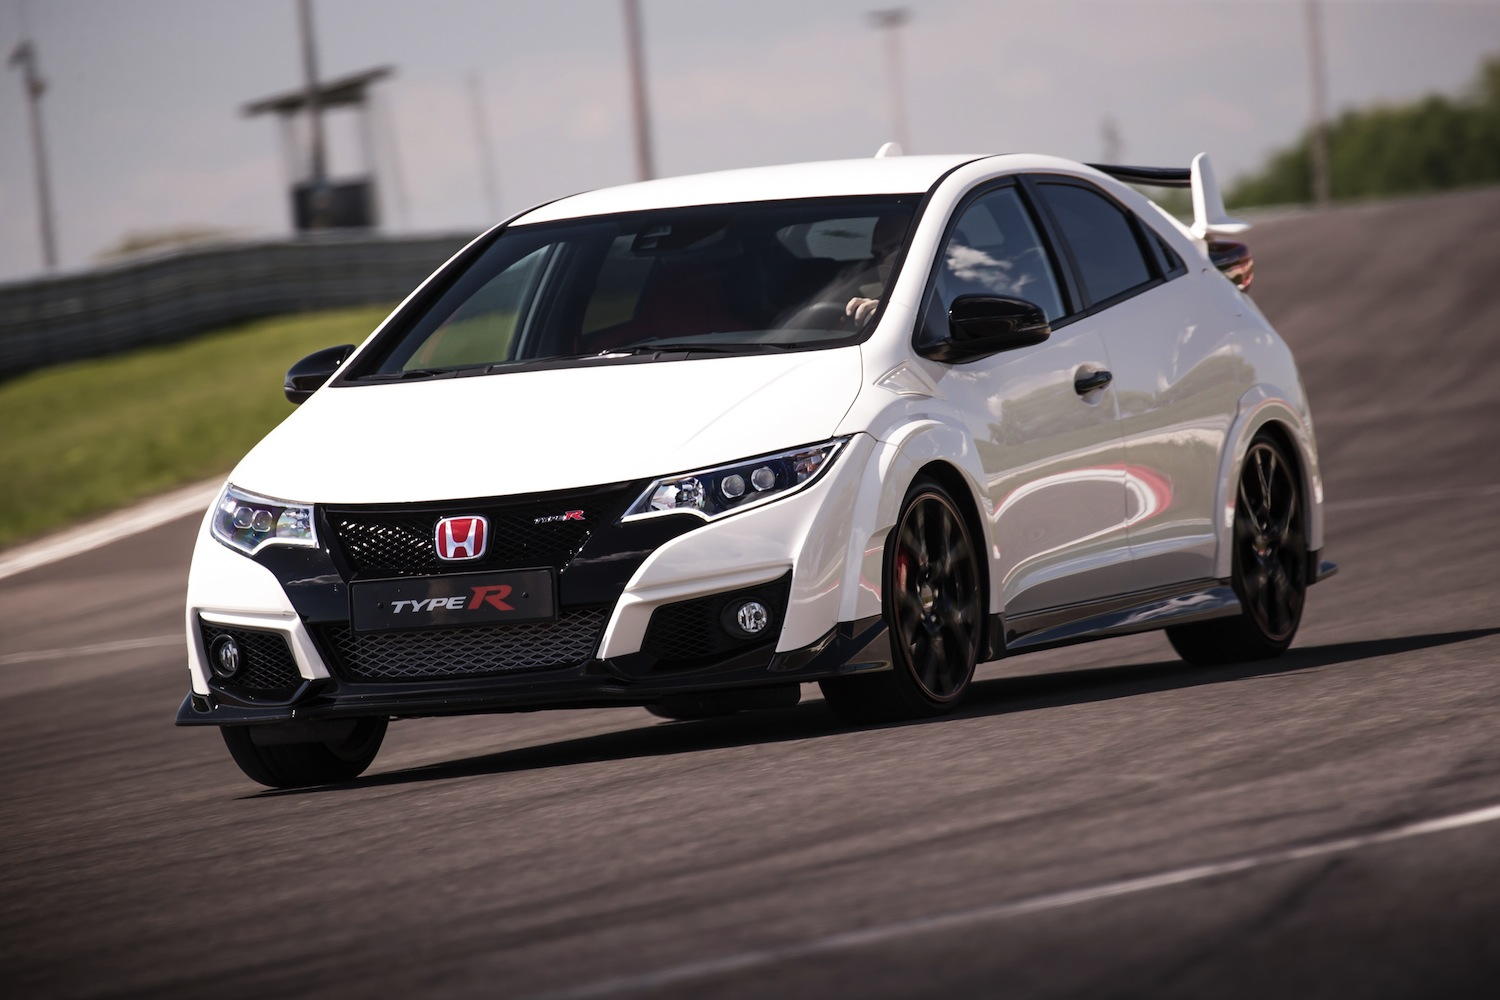 honda civic type r fk2 -